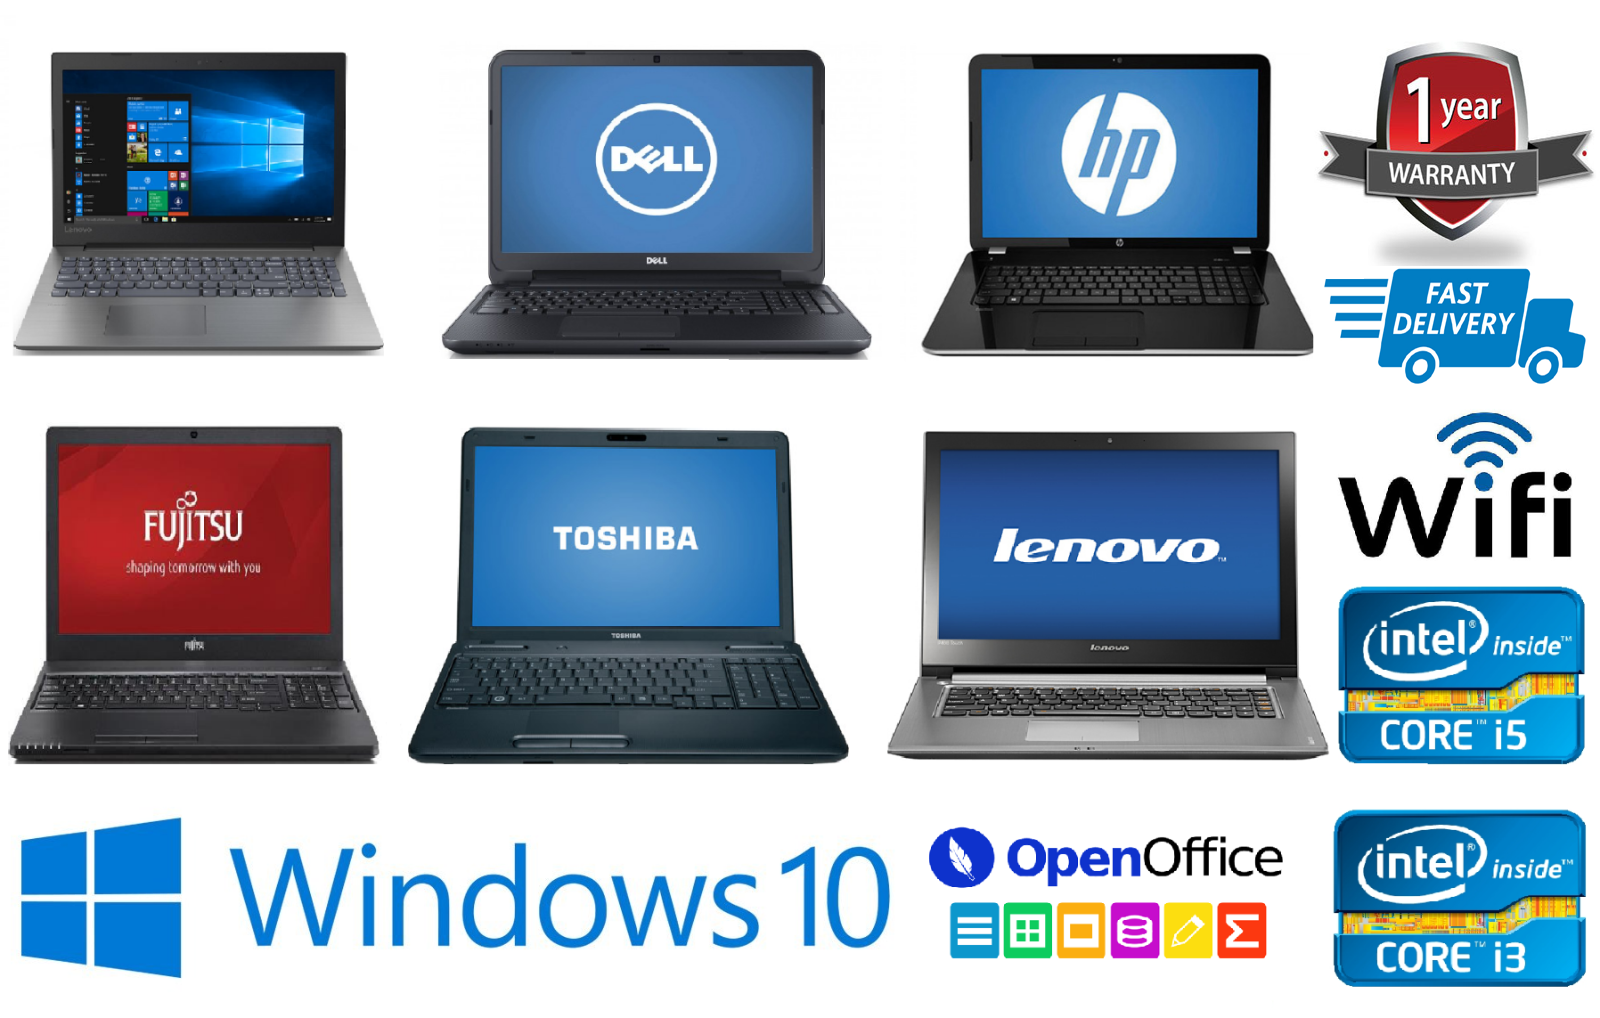 Laptop Windows - CHEAP FAST INTEL CORE Core2 Duo i3 i5 i7 LAPTOP WINDOWS 10 8GB RAM HDD/SSD WiFi